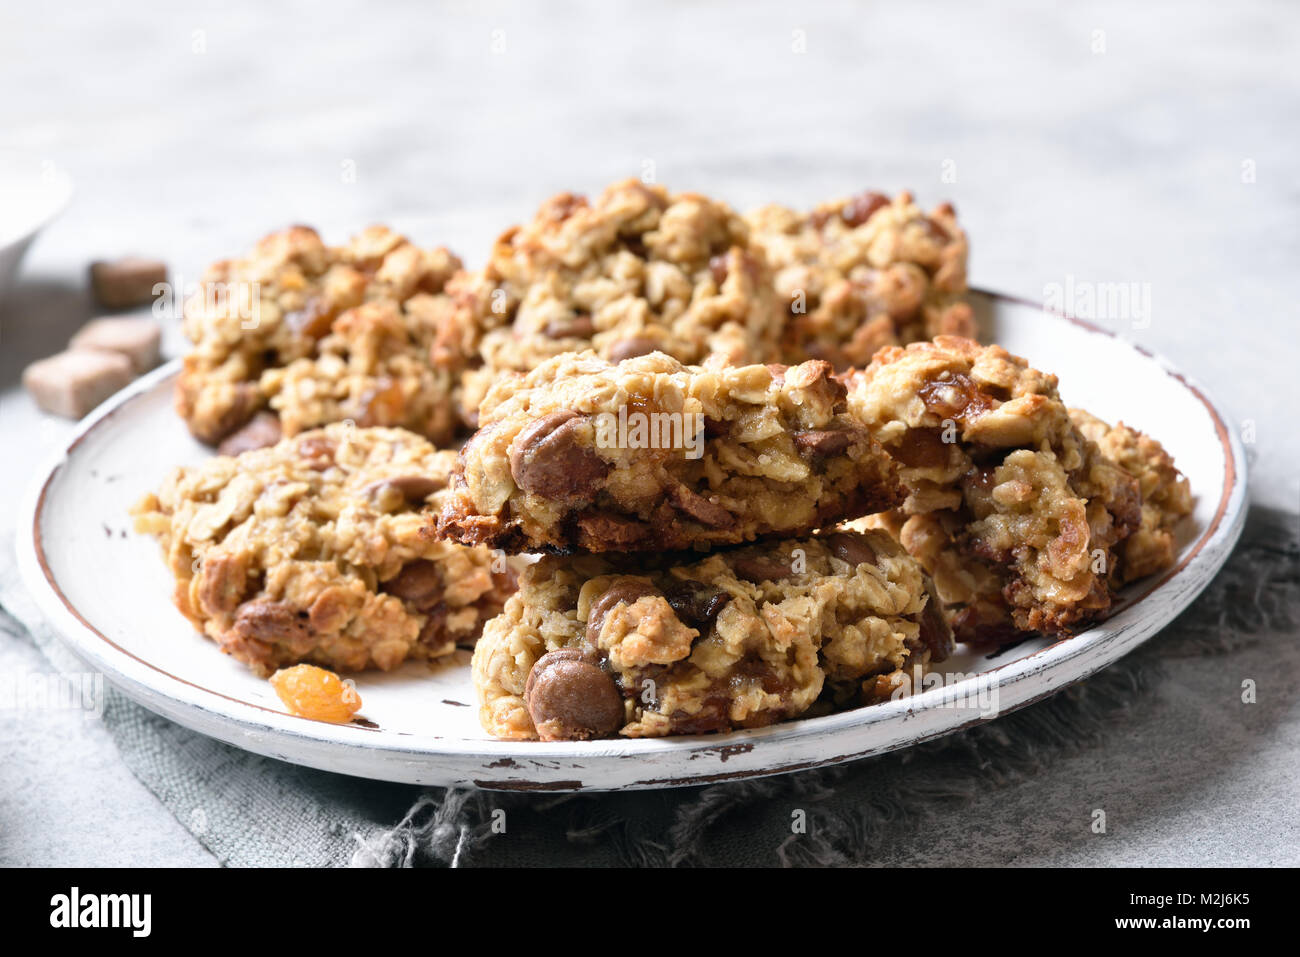 Healthy oatmeal cookies on plate, close up view - Stock Image